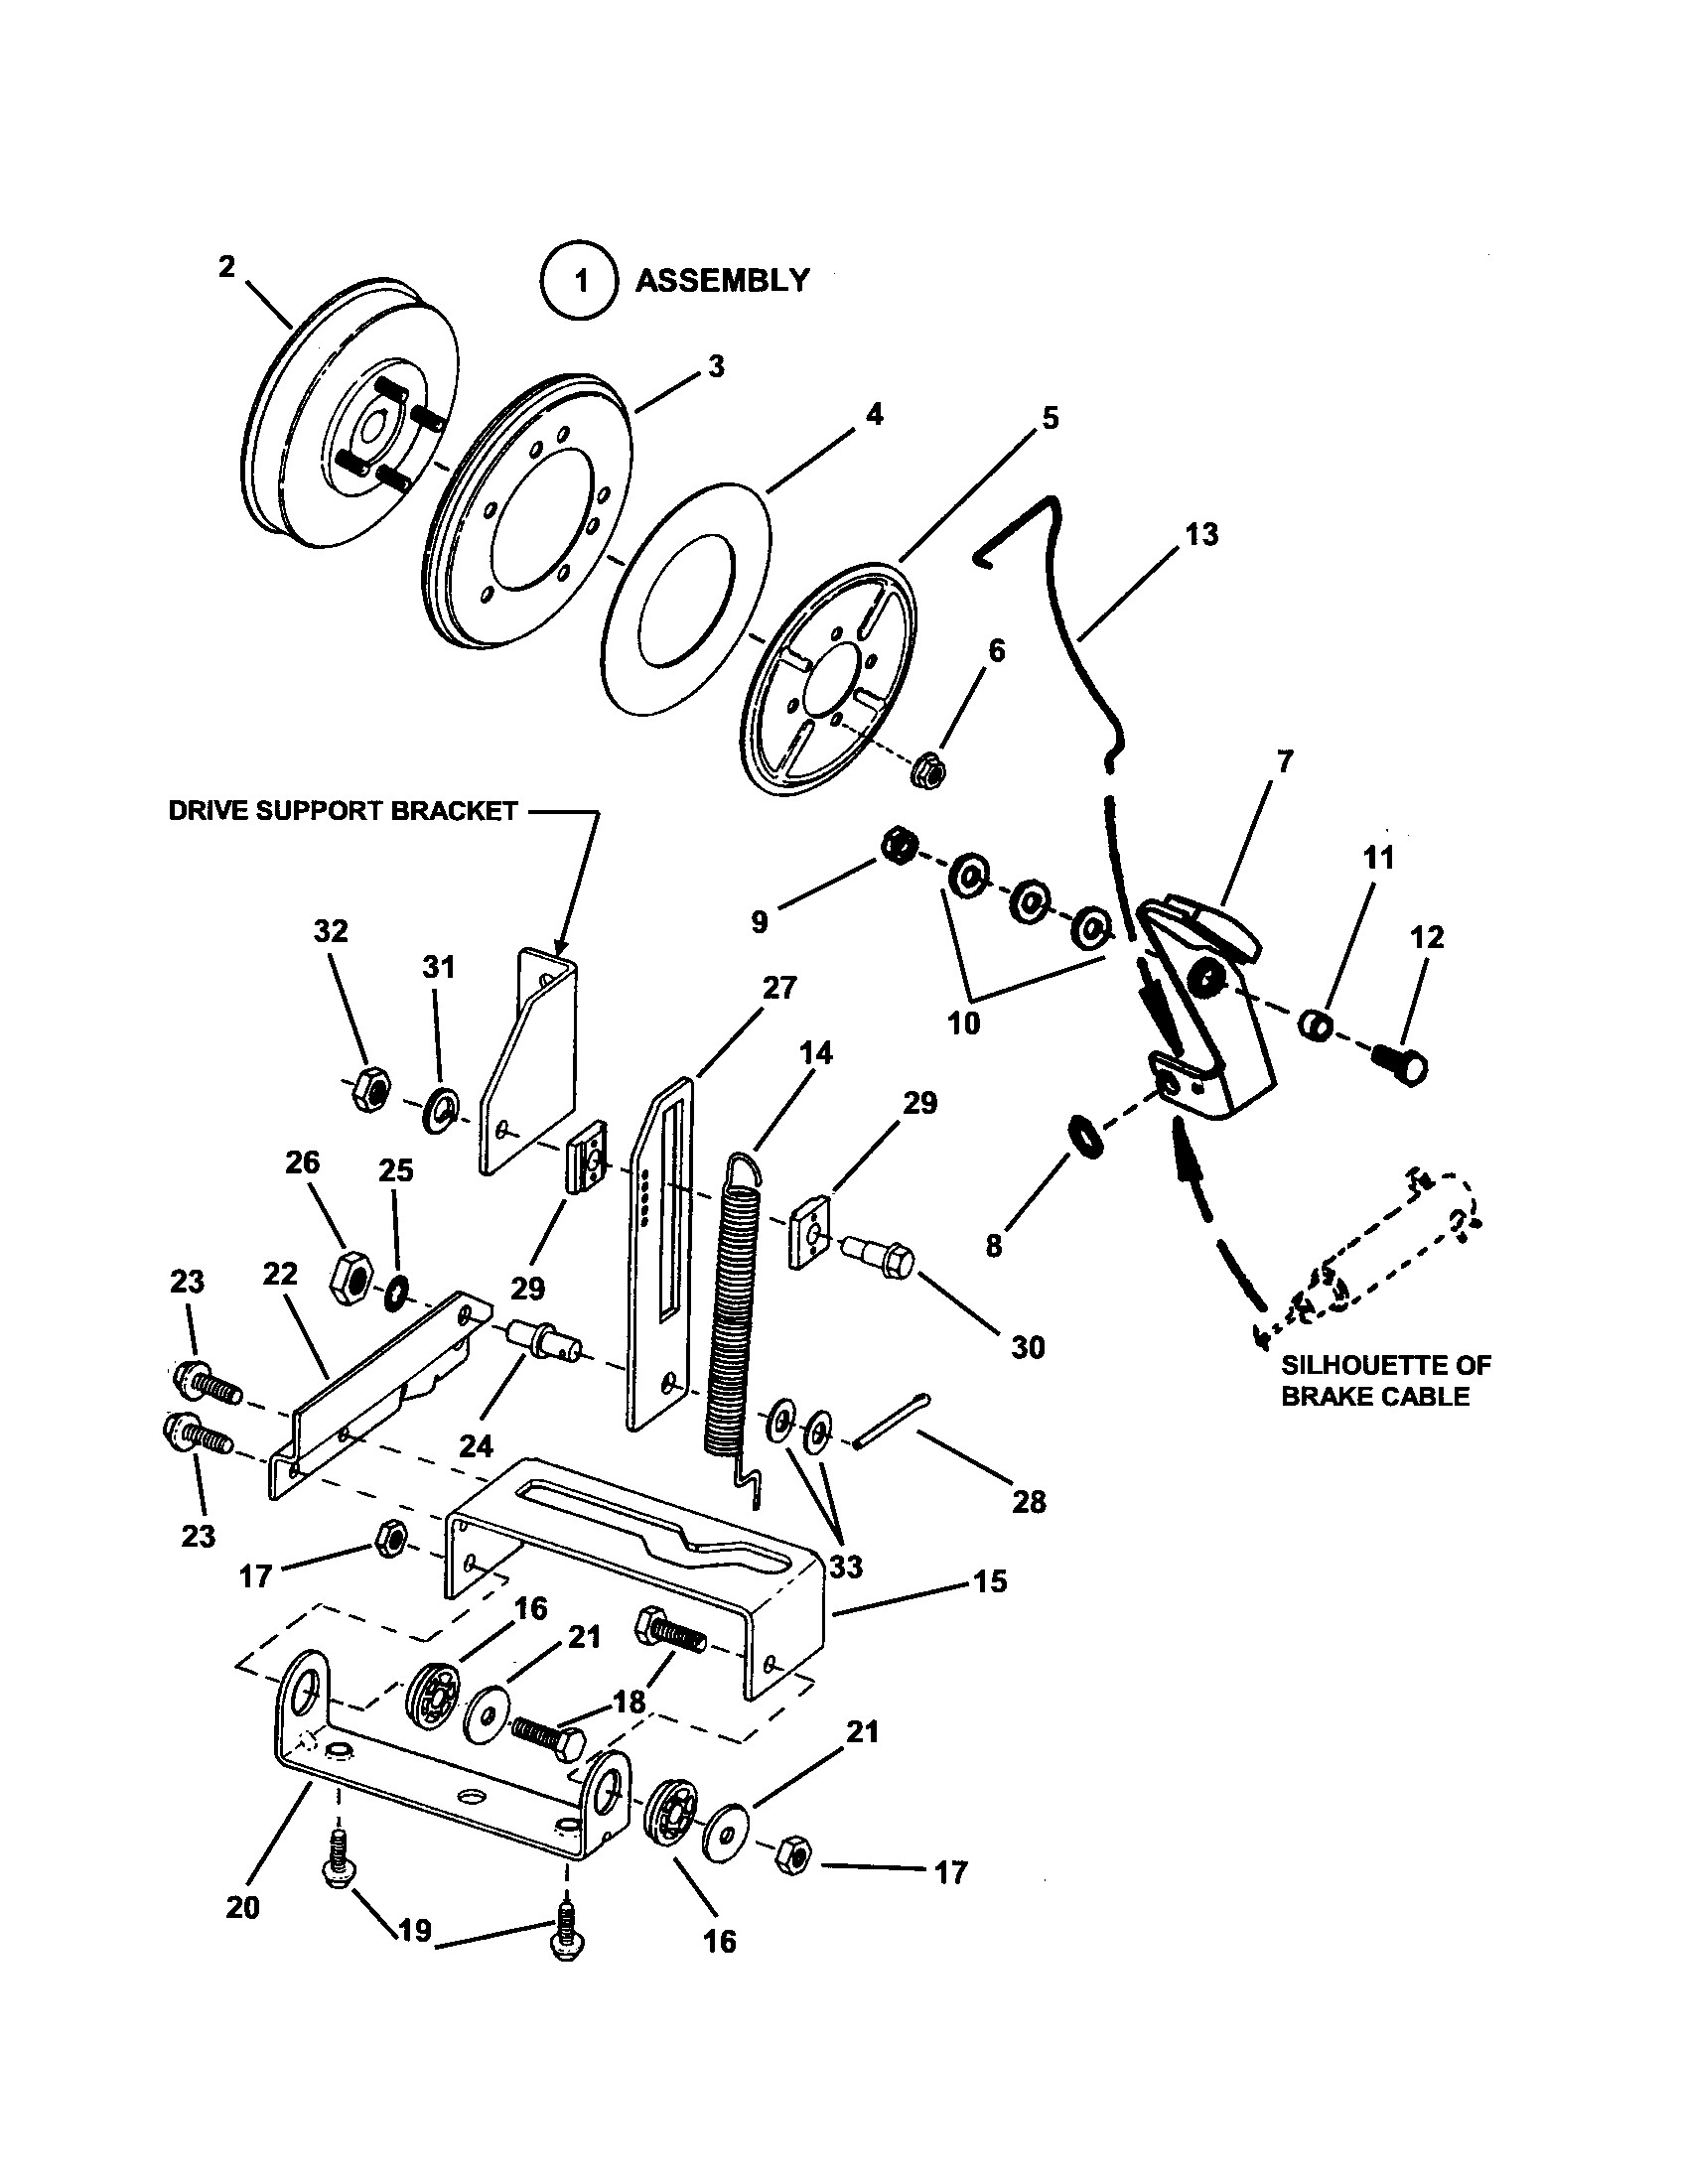 Small Engine Parts Diagram Looking for Snapper Model Wm B Rear Engine Riding Mower Repair Of Small Engine Parts Diagram